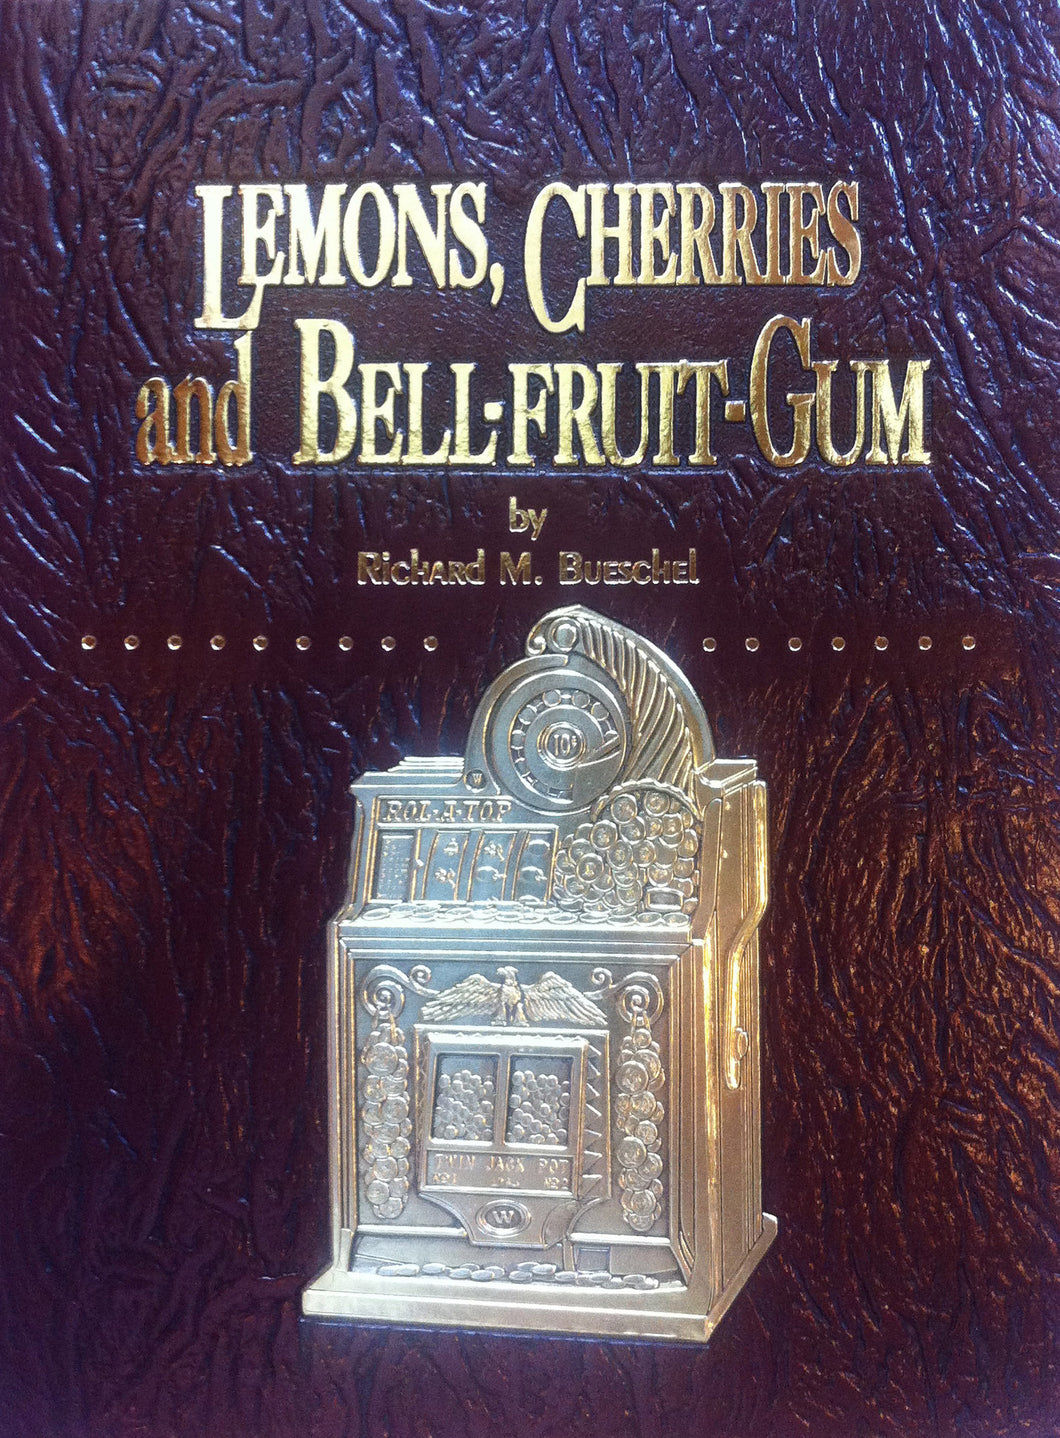 Lemons, Cherries and Bell-Fruit-Gum Deluxe Embossed Edition